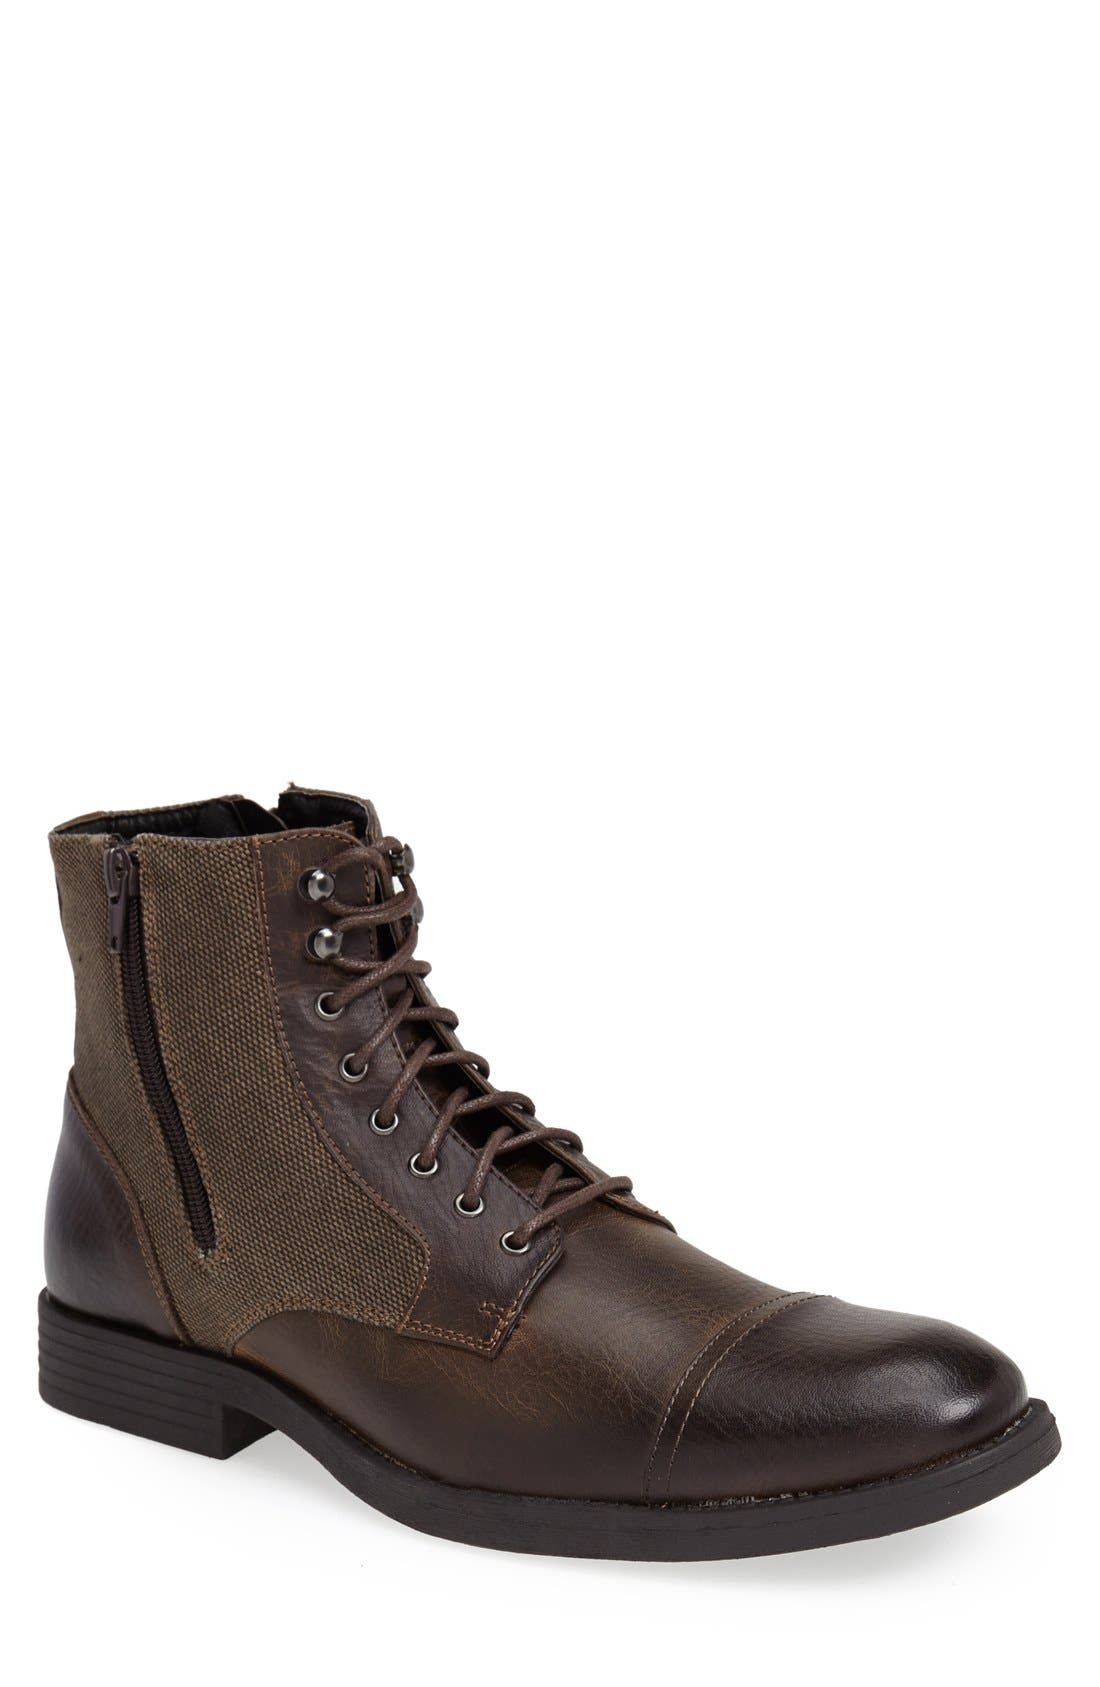 'Edgar' Cap Toe Boot,                         Main,                         color, 201